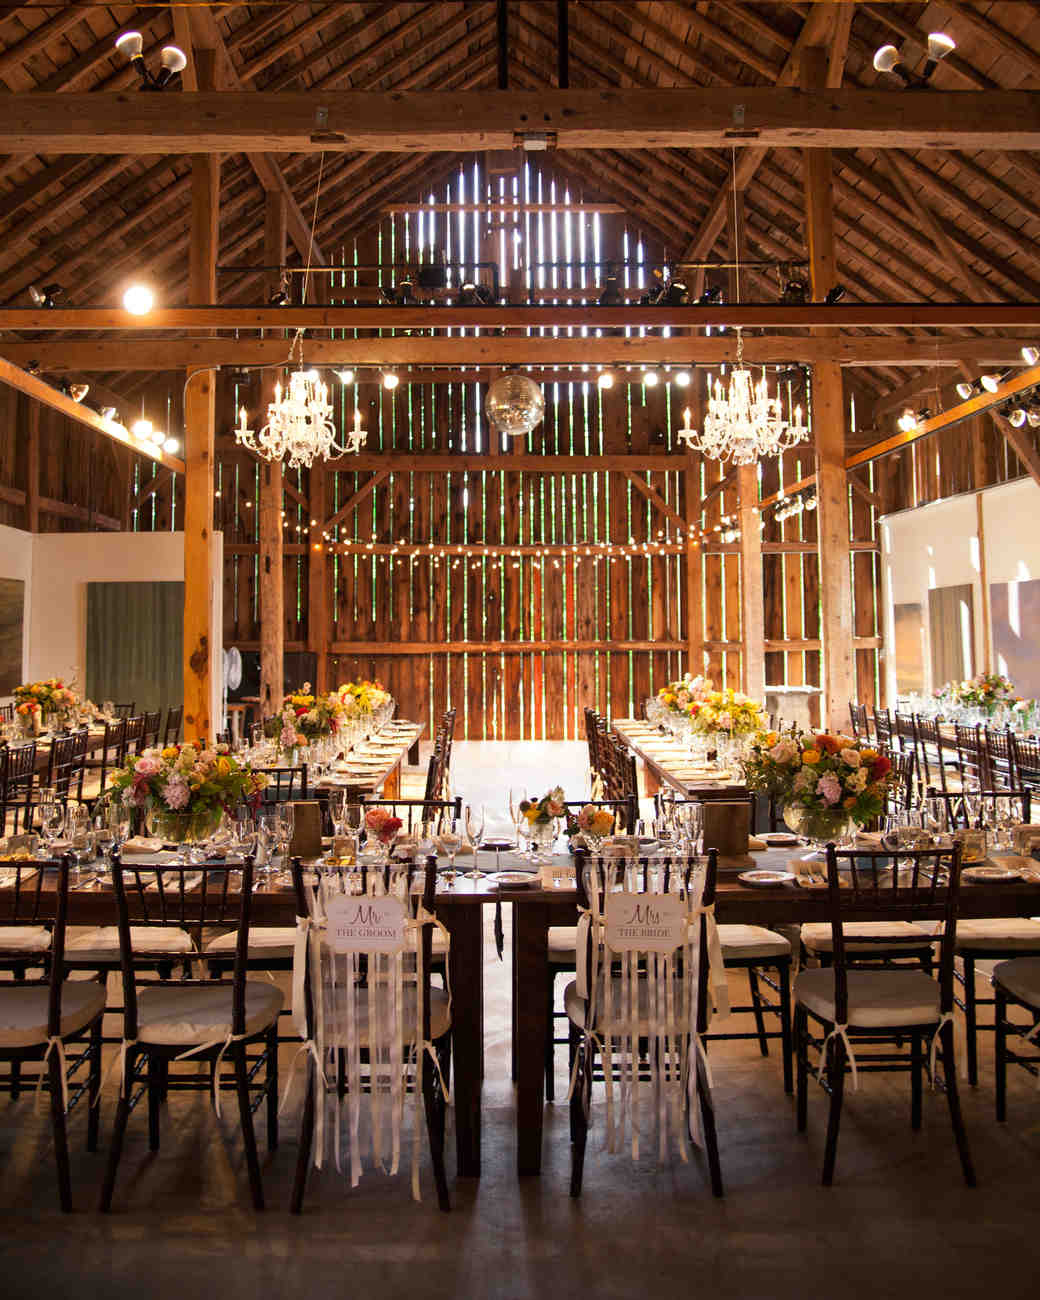 A Romantic Rustic Barn Wedding In Wisconsin